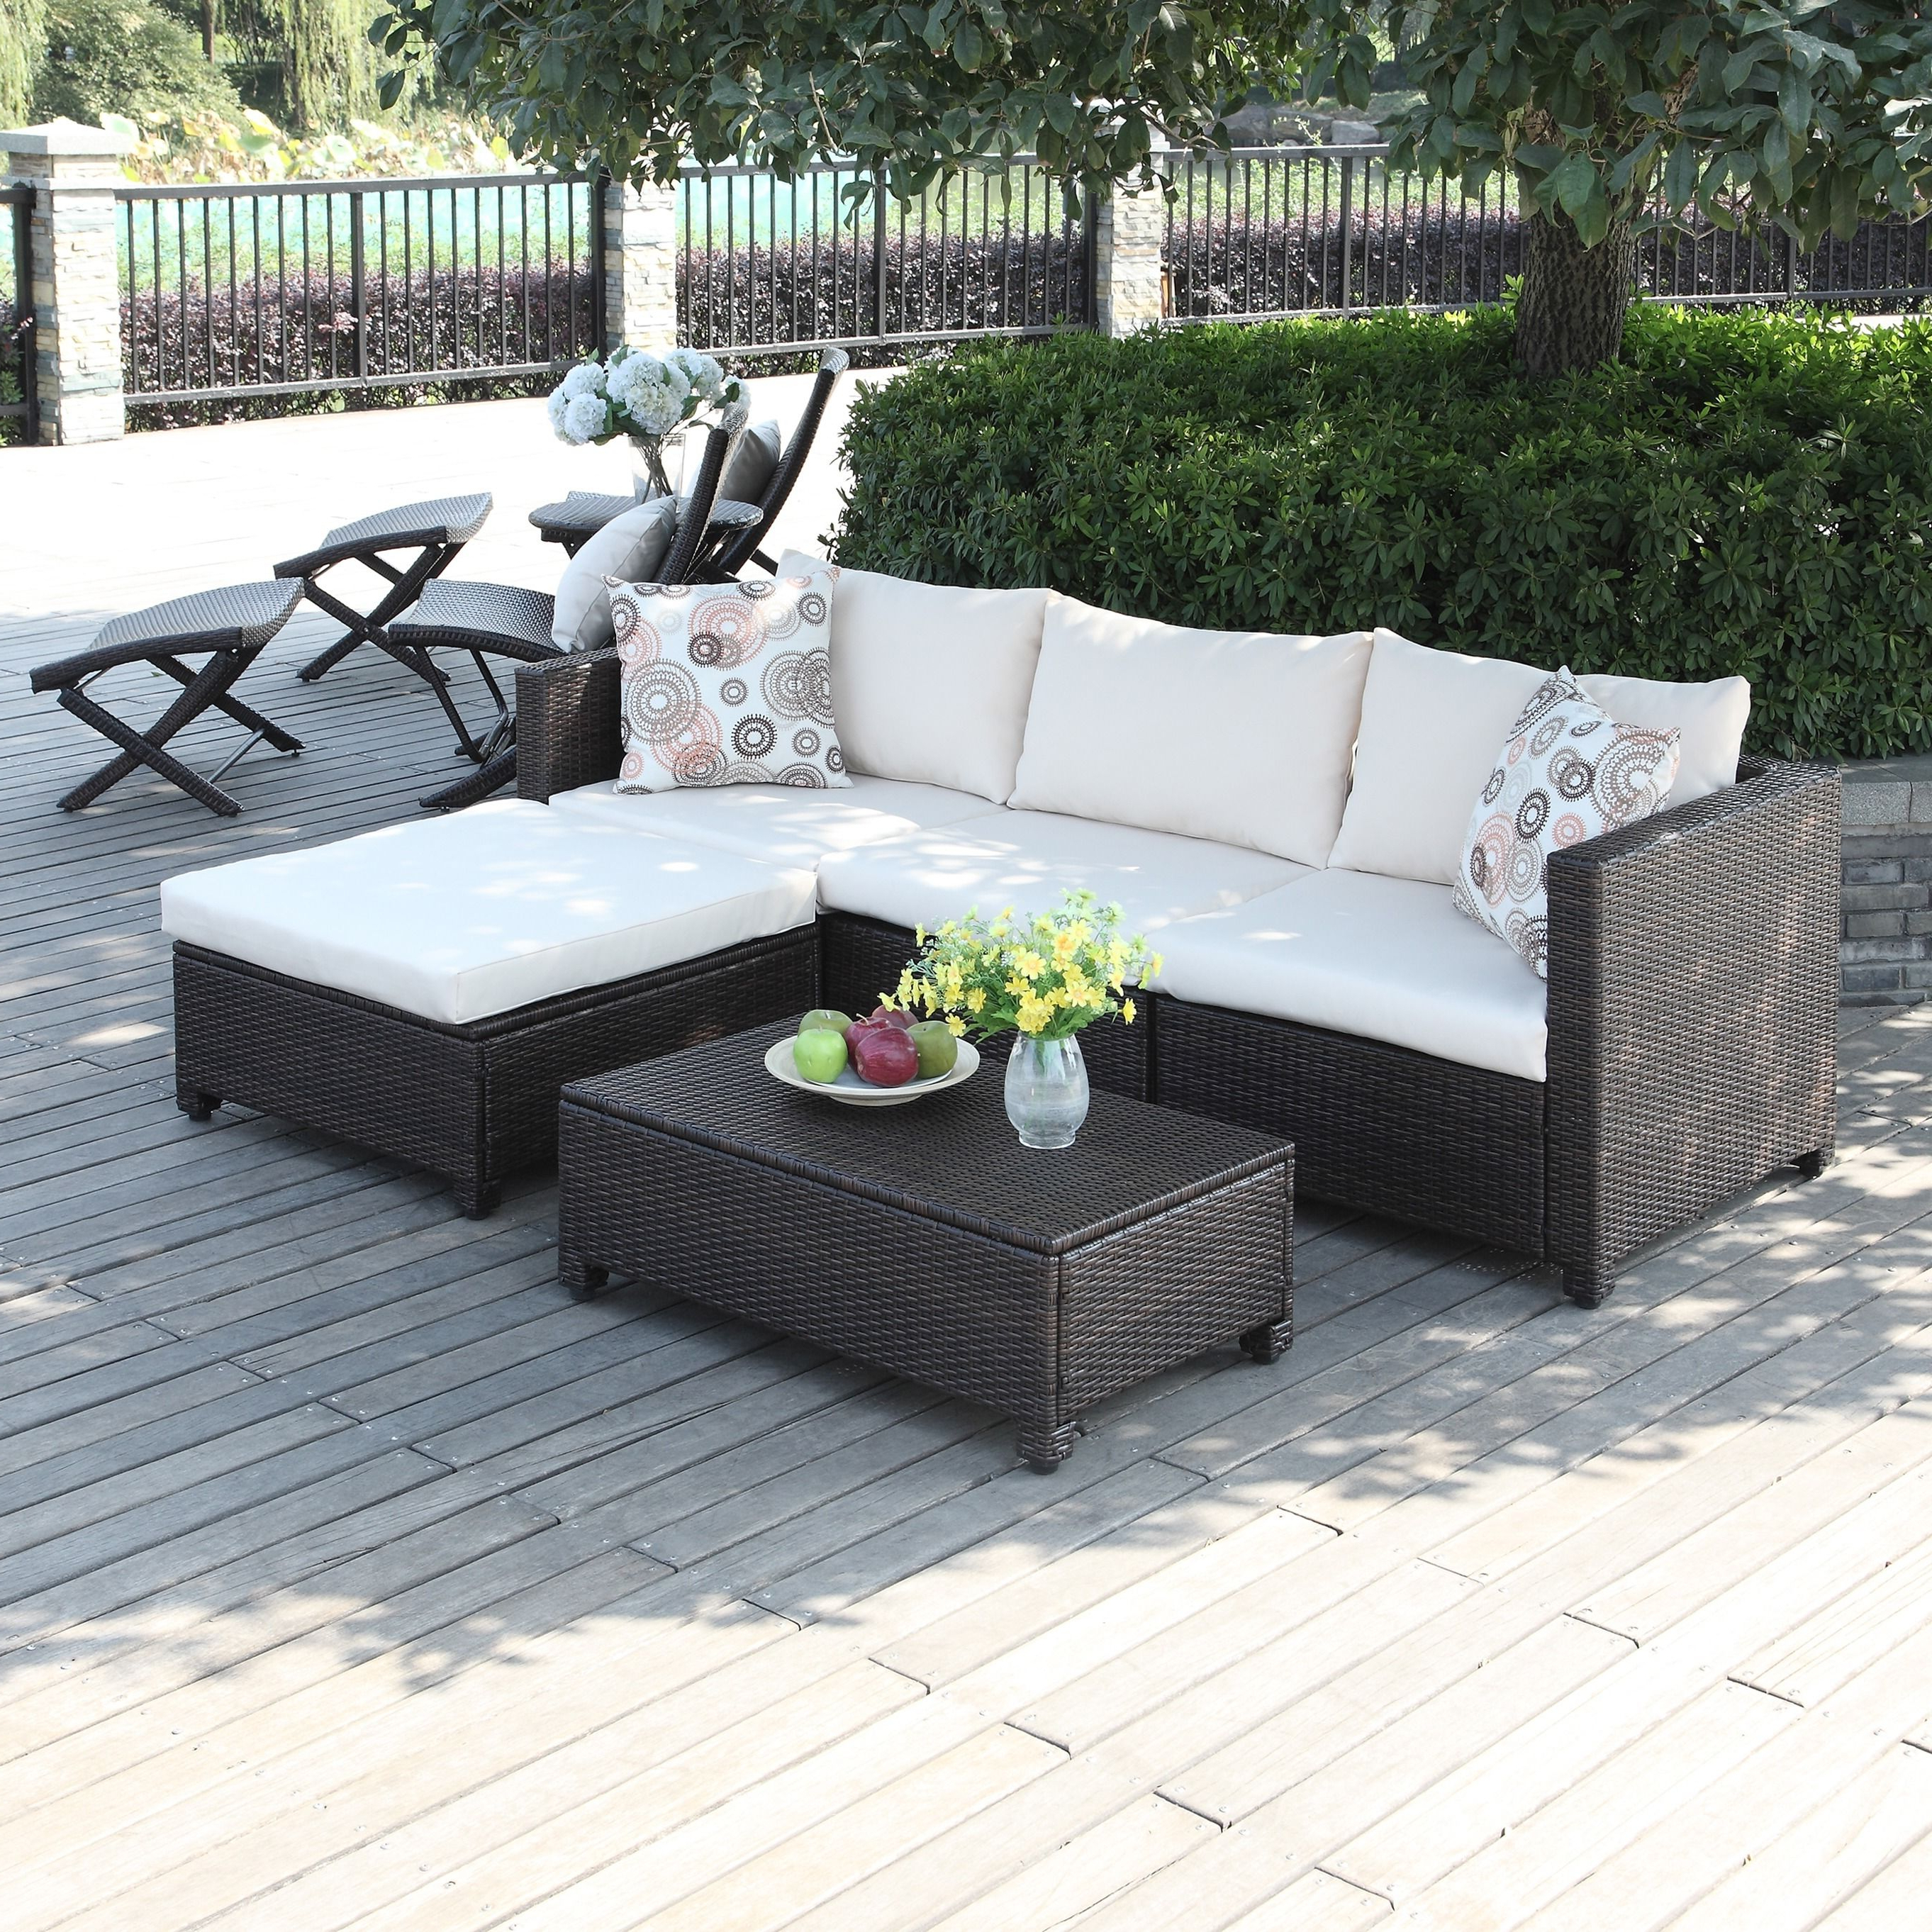 The Portfolio Aldrich 5 Piece Set Features 2 Corner Chairs Within 2020 Stockwell Patio Sofas With Cushions (View 11 of 20)